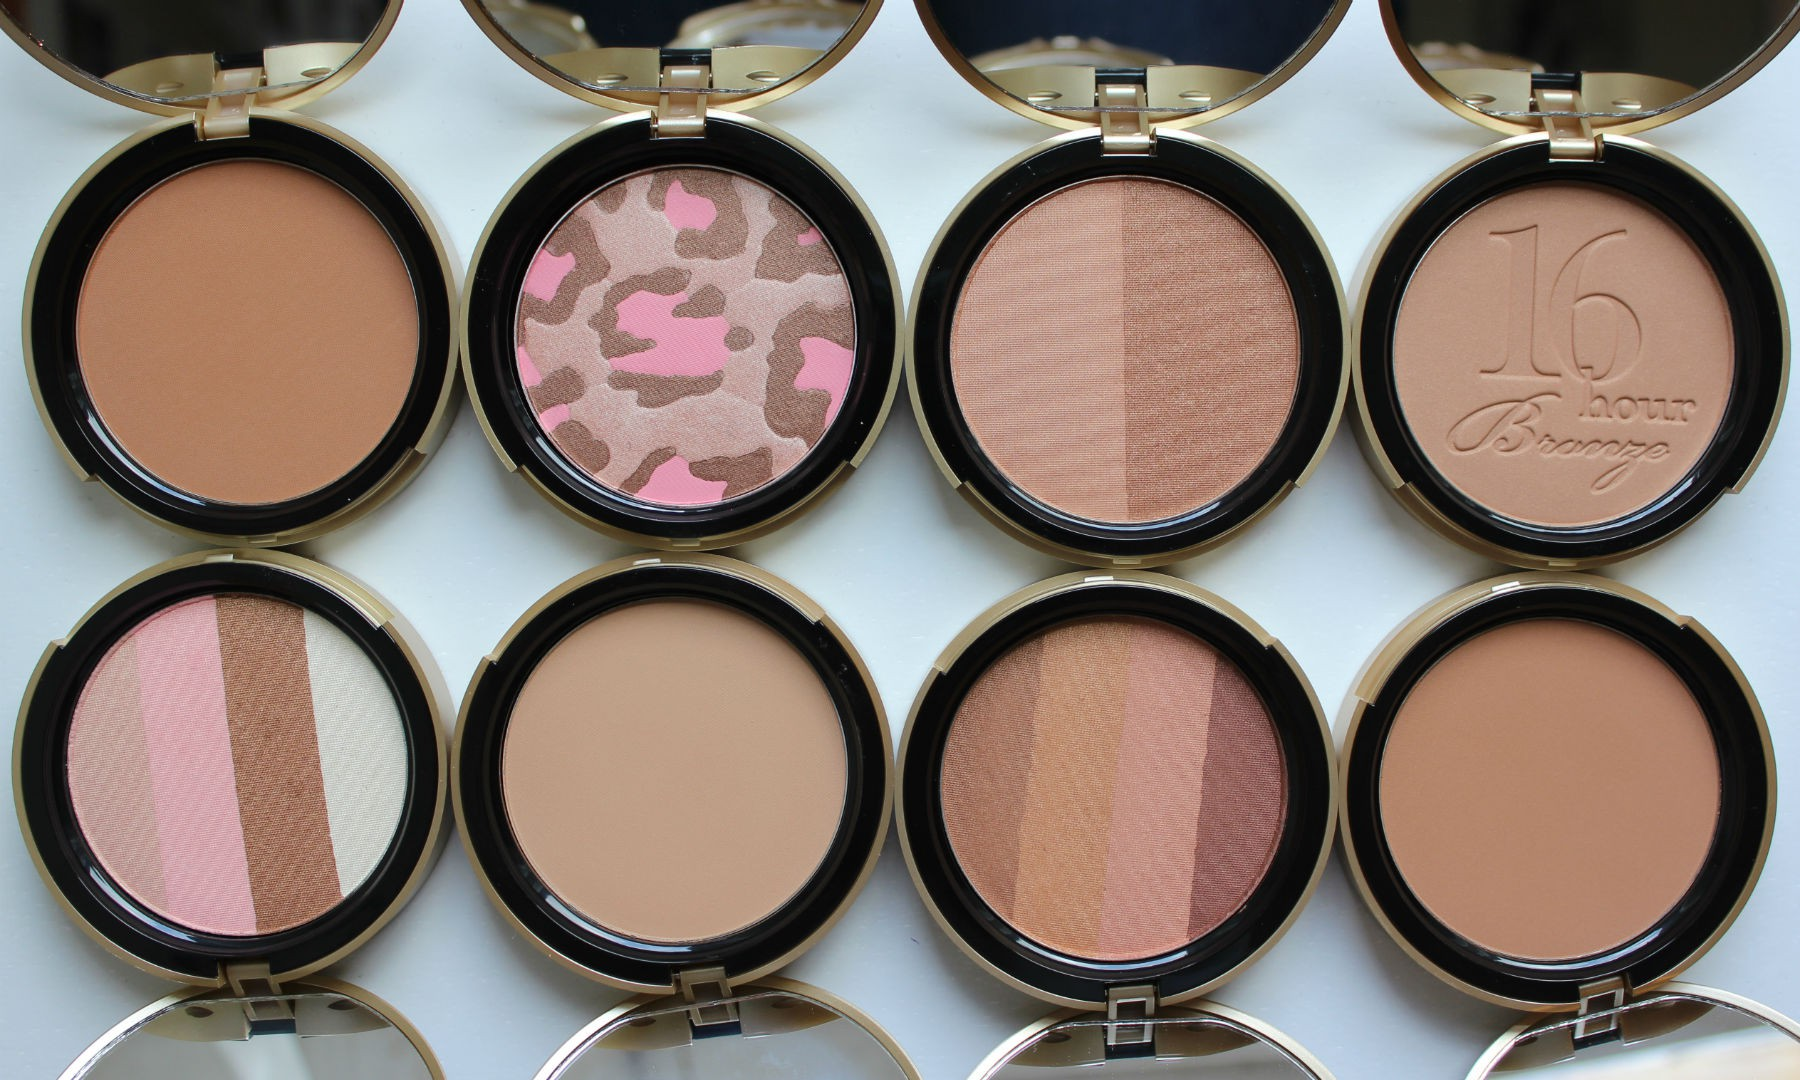 TOO FACED BRONZER GUIDE – Lily Pebbles